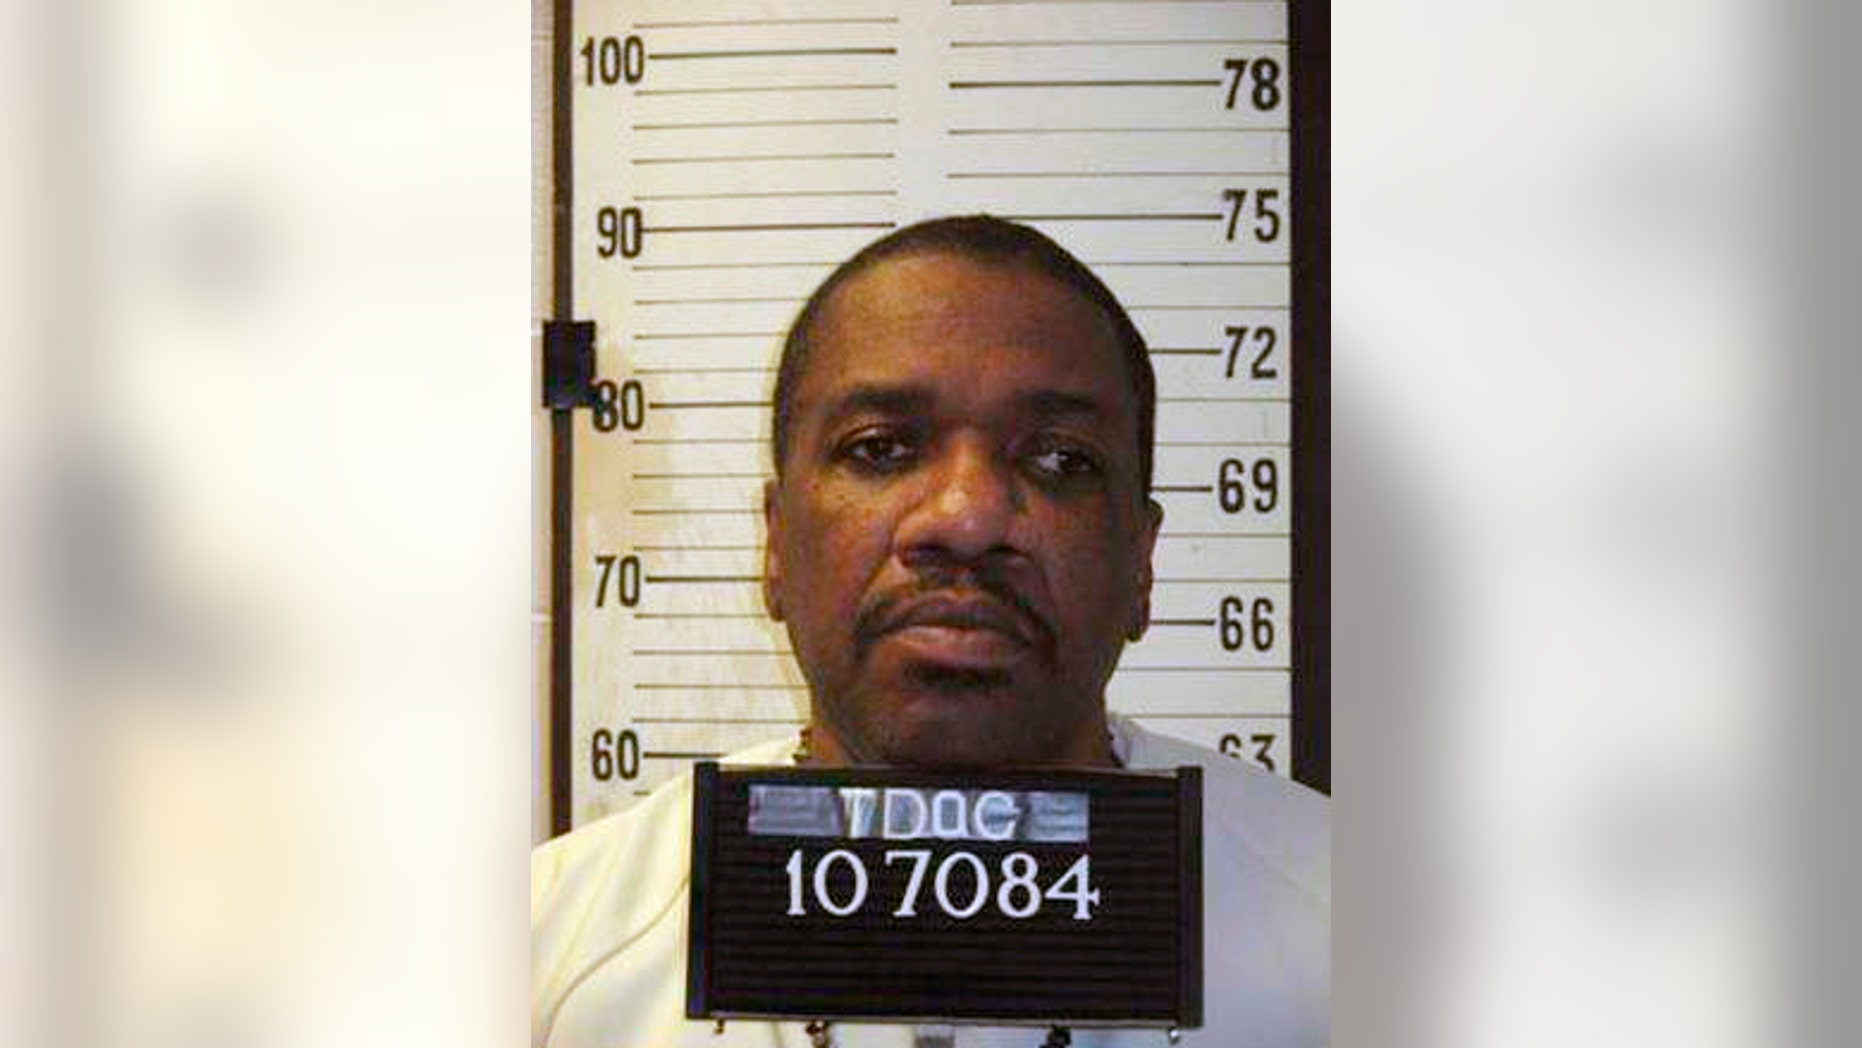 This undated photo provided by Tennessee Dept. of Corrections shows Charles Wright. Wright scheduled to be executed in October has died in prison less than a day after a fellow inmate was executed. According to the Tennessee Correction Department, Charles Wright was pronounced dead of natural causes at 11:57 a.m. on Friday, May 17, 2019 at the Riverbend Maximum Security Institution in Nashville, Tenn. (Tennessee Dept. of Corrections via AP)